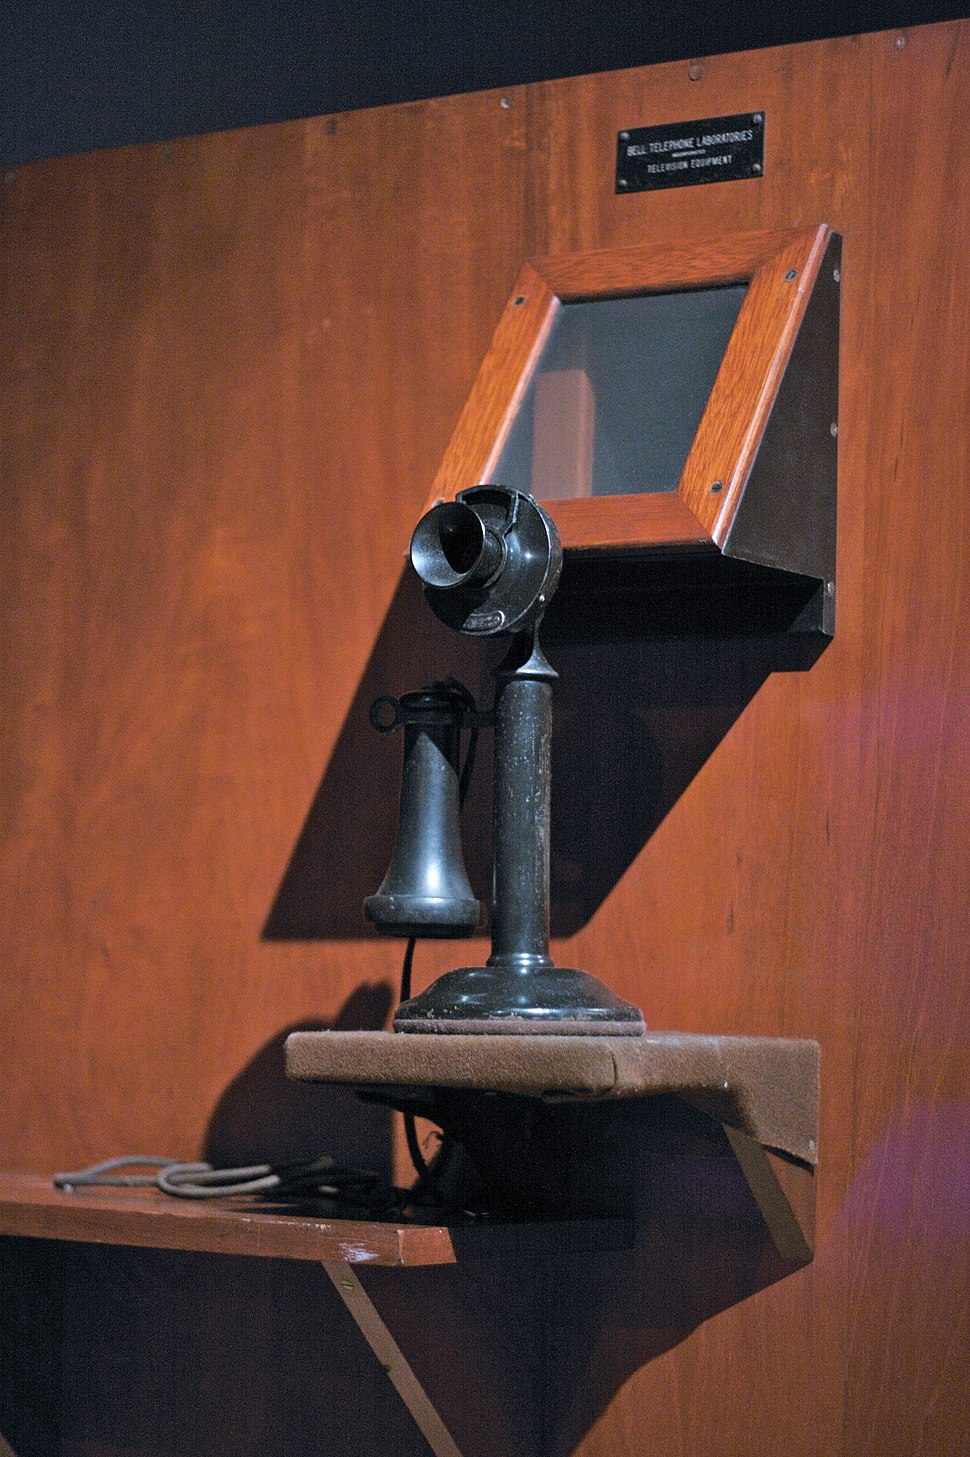 Bell Labs videophone prototype (1927), front view, MoMI